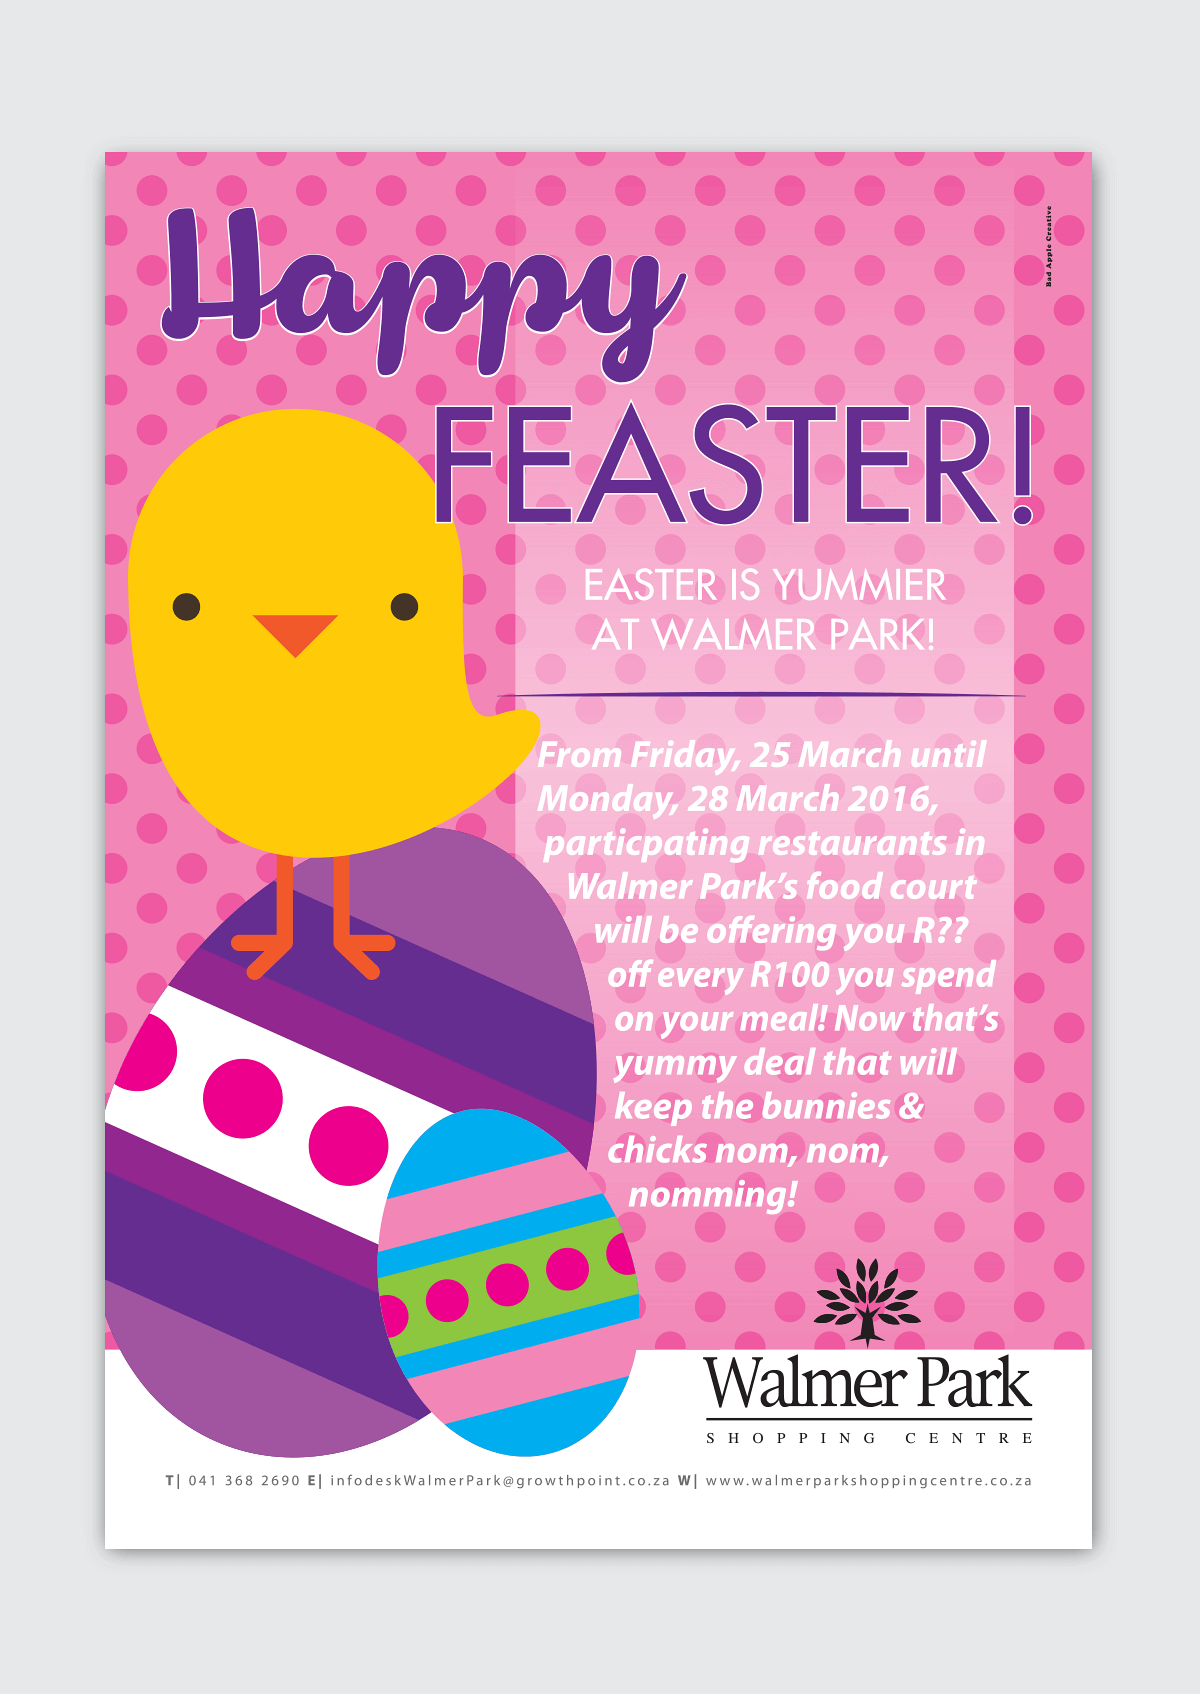 Walmer-Park-Page-Icon-Easter-Poster-Pink-10